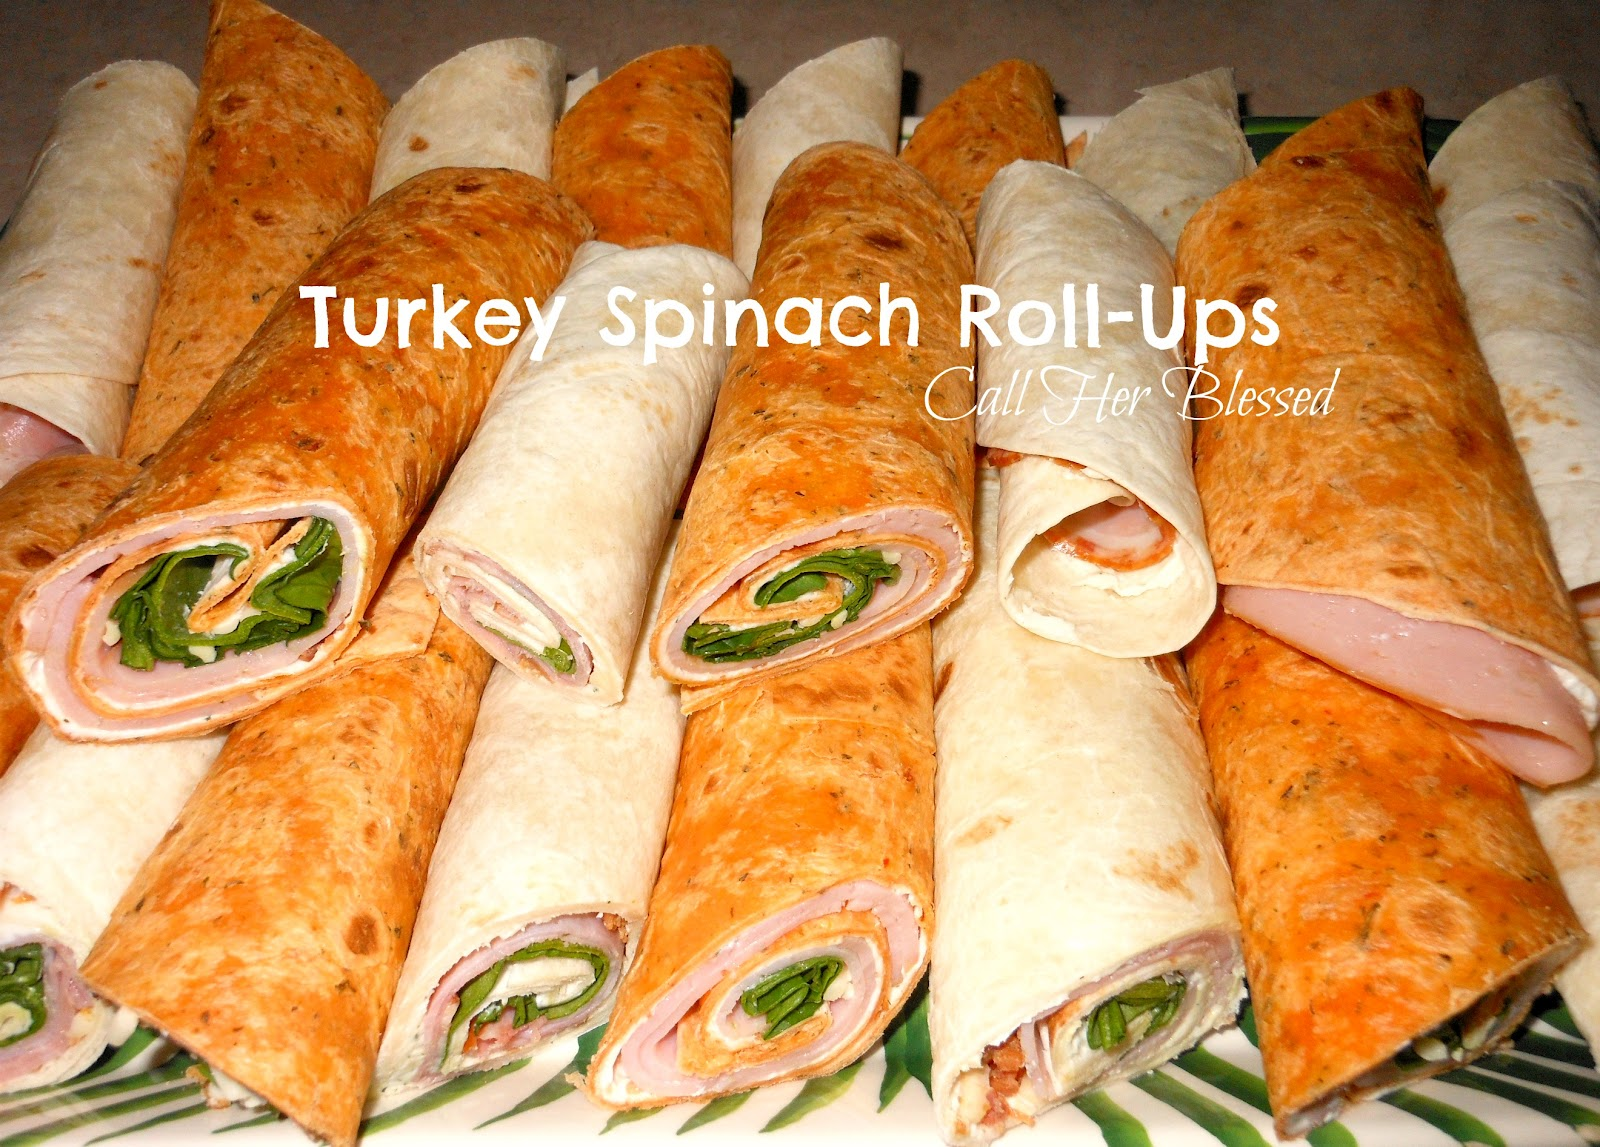 Call Her Blessed: Turkey Spinach Roll-ups